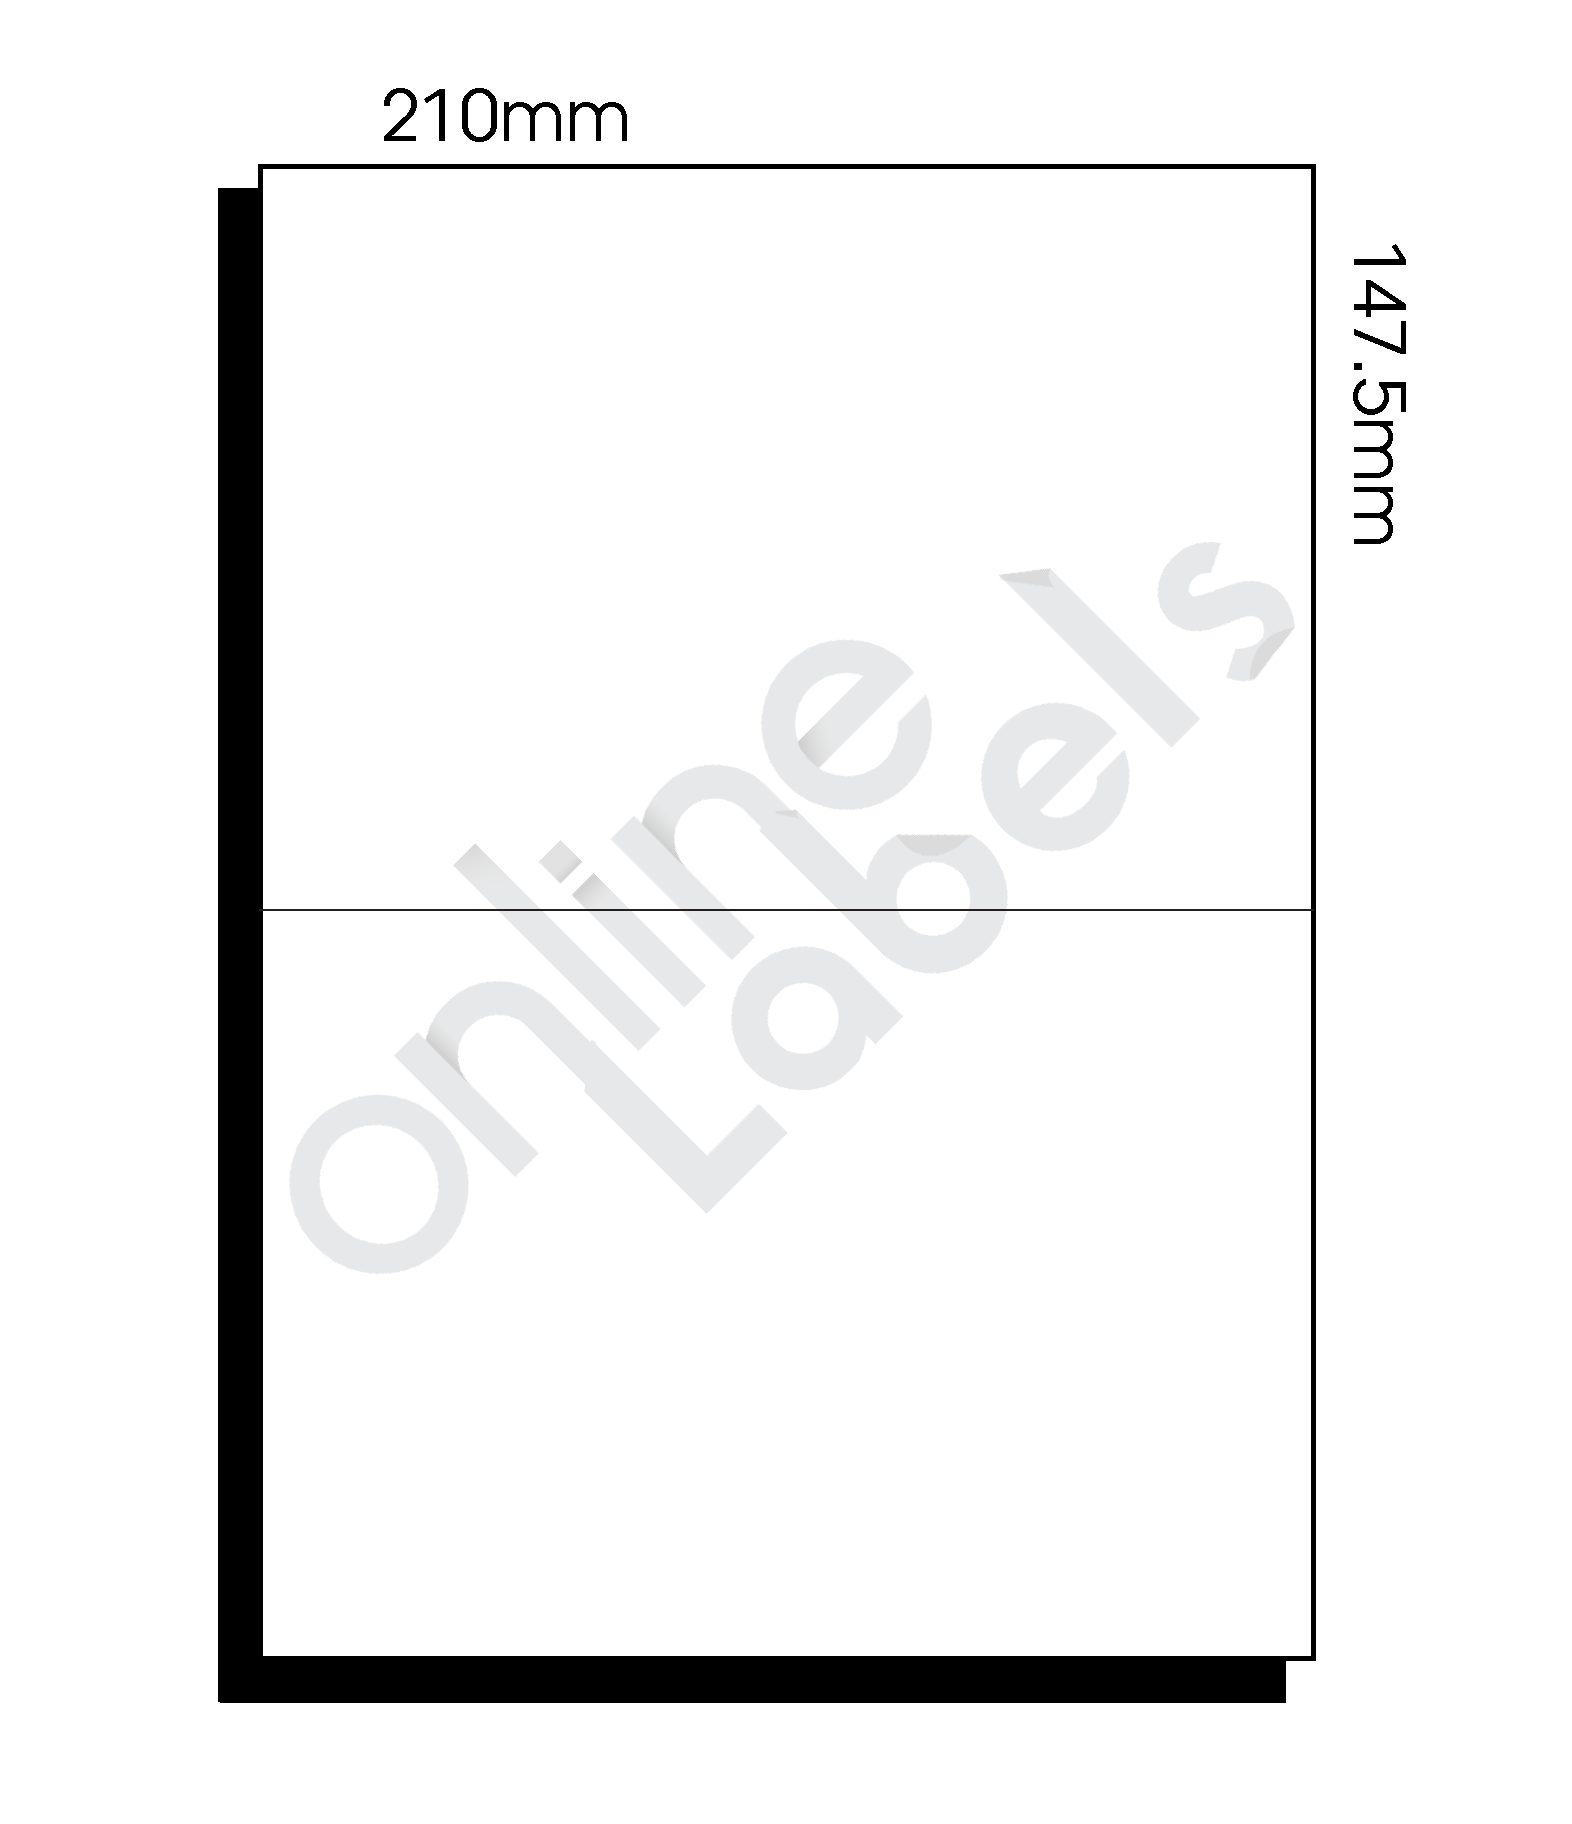 210mm x 147.5mm – 2 Labels per Sheet